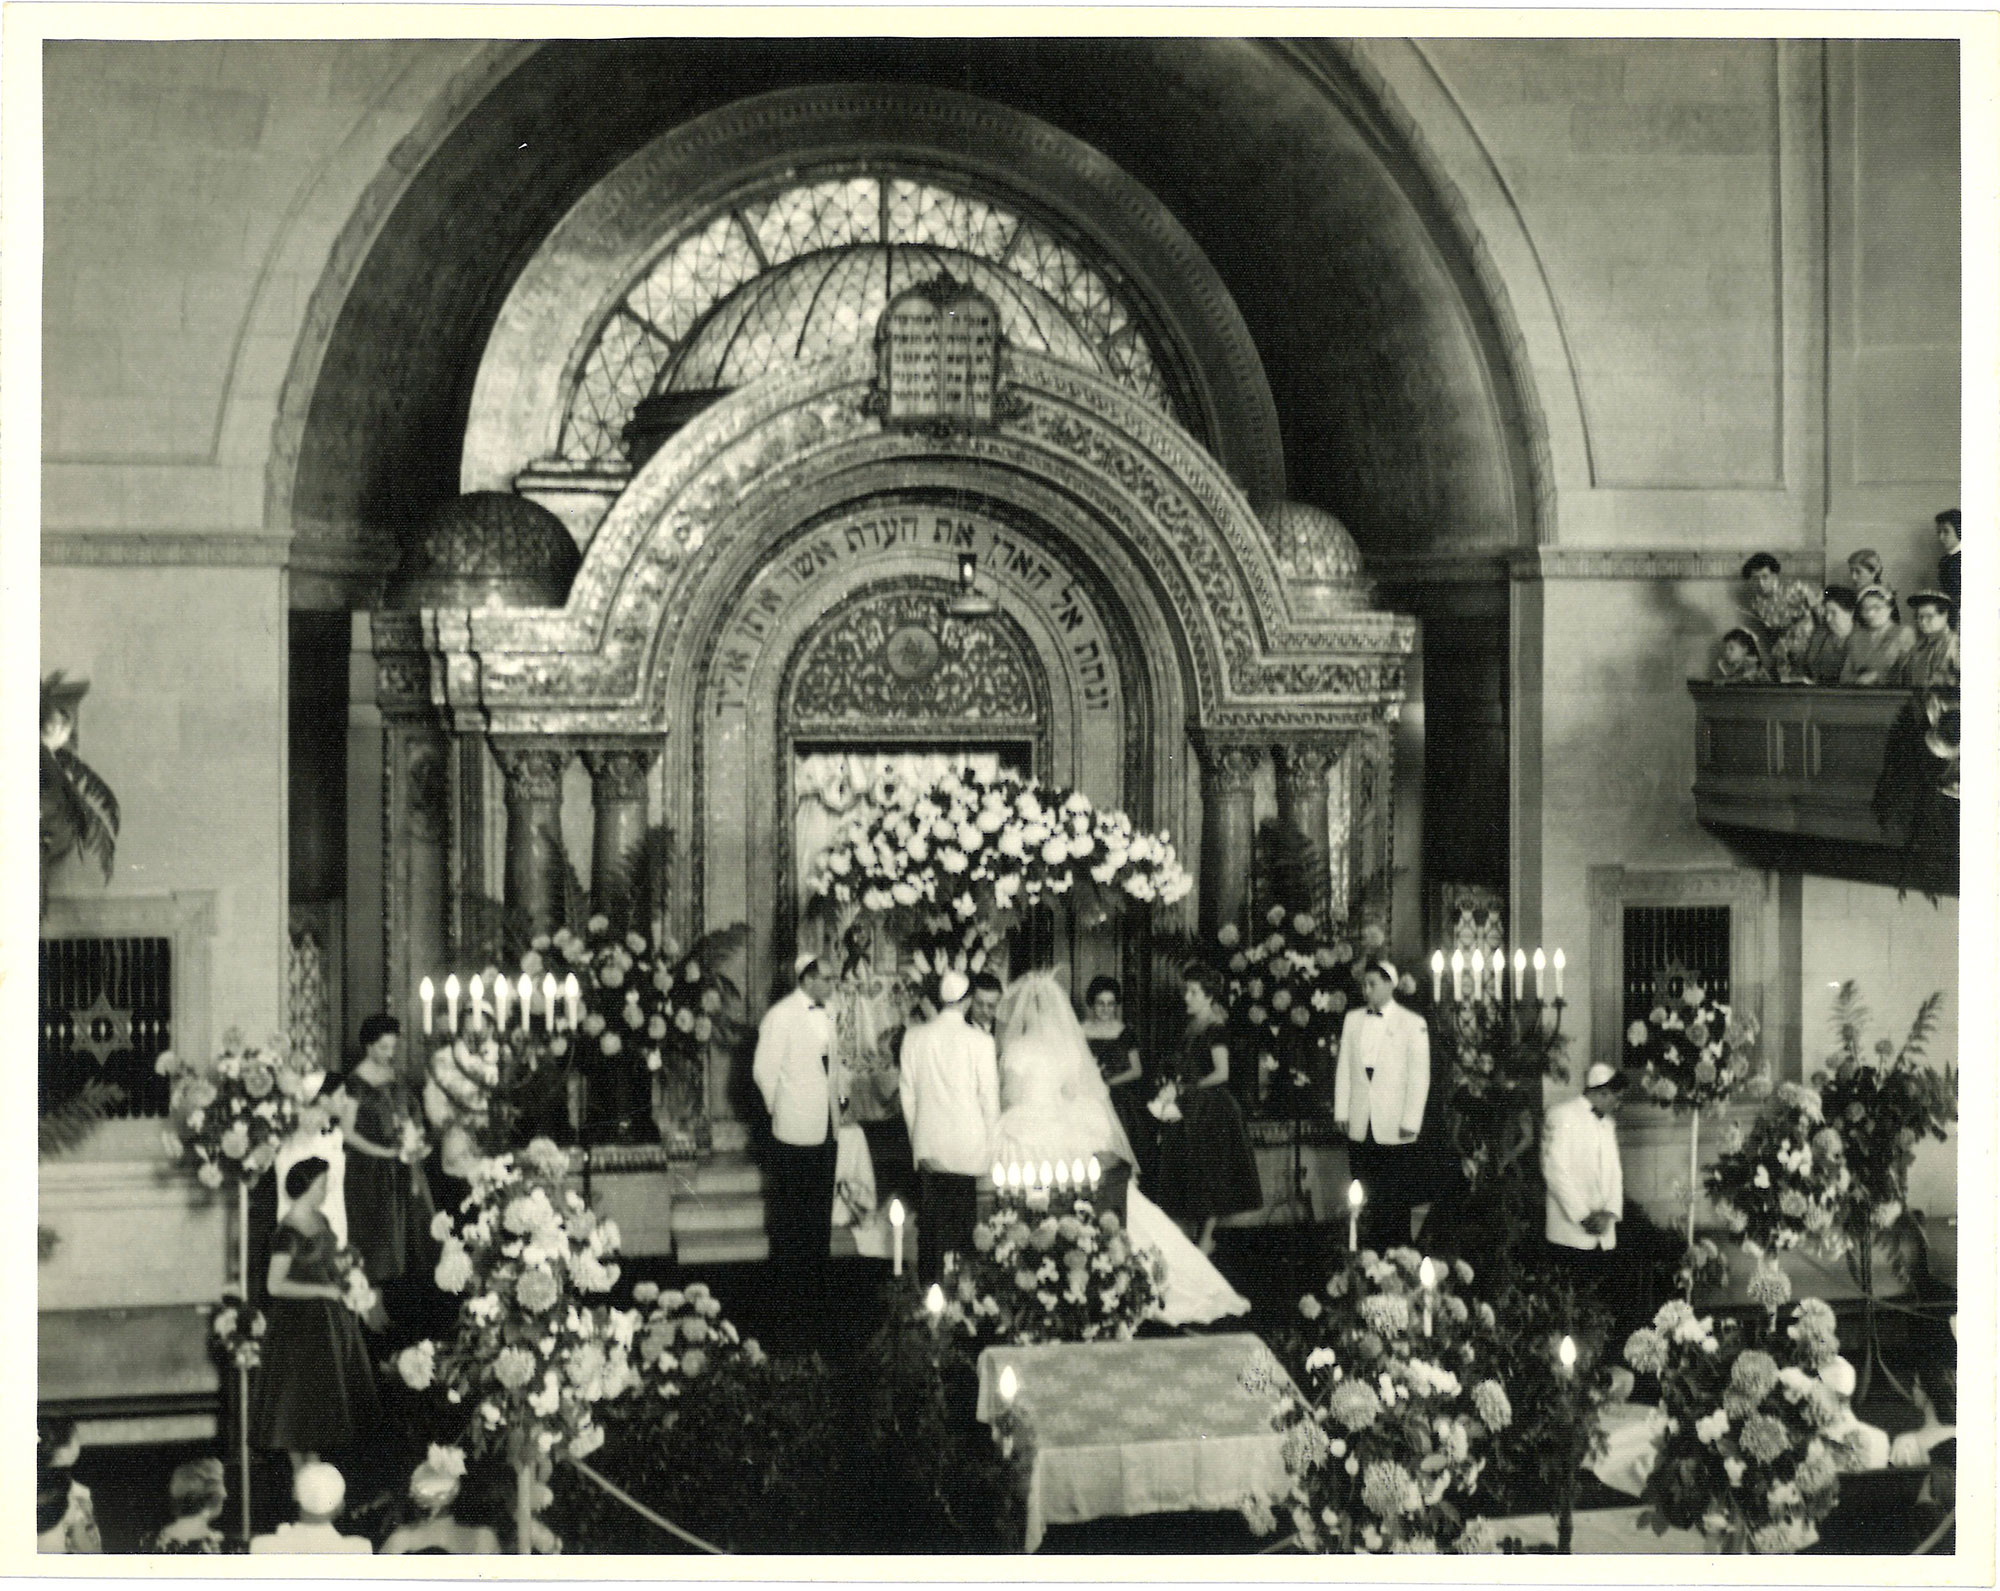 Wedding ceremony inside the Bikur Cholim synagogue